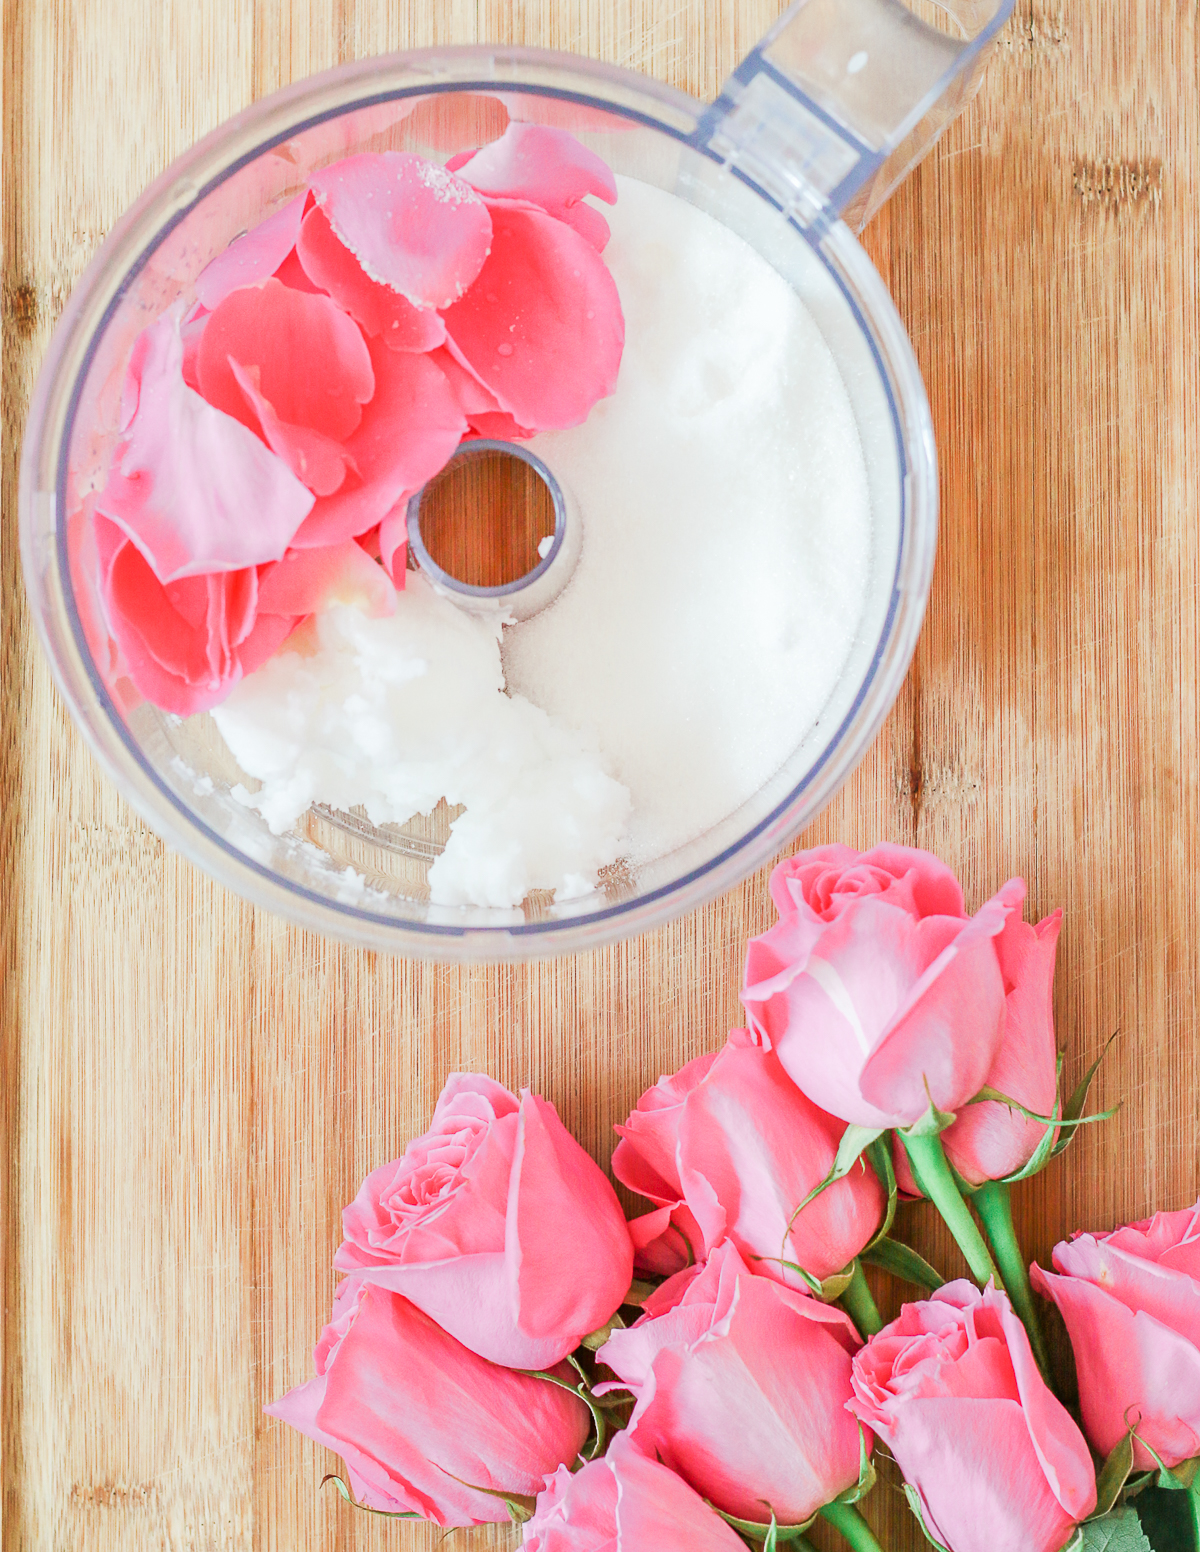 DIY rose sugar scrub recipe made with white sugar, coconut oil, rose essential oil, and fresh rose petals by southern blogger Stephanie Ziajka from Diary of a Debutante, DIY sugar scrub recipe, diy sugar body scrub, diy sugar scrub gift, best diy sugar scrub